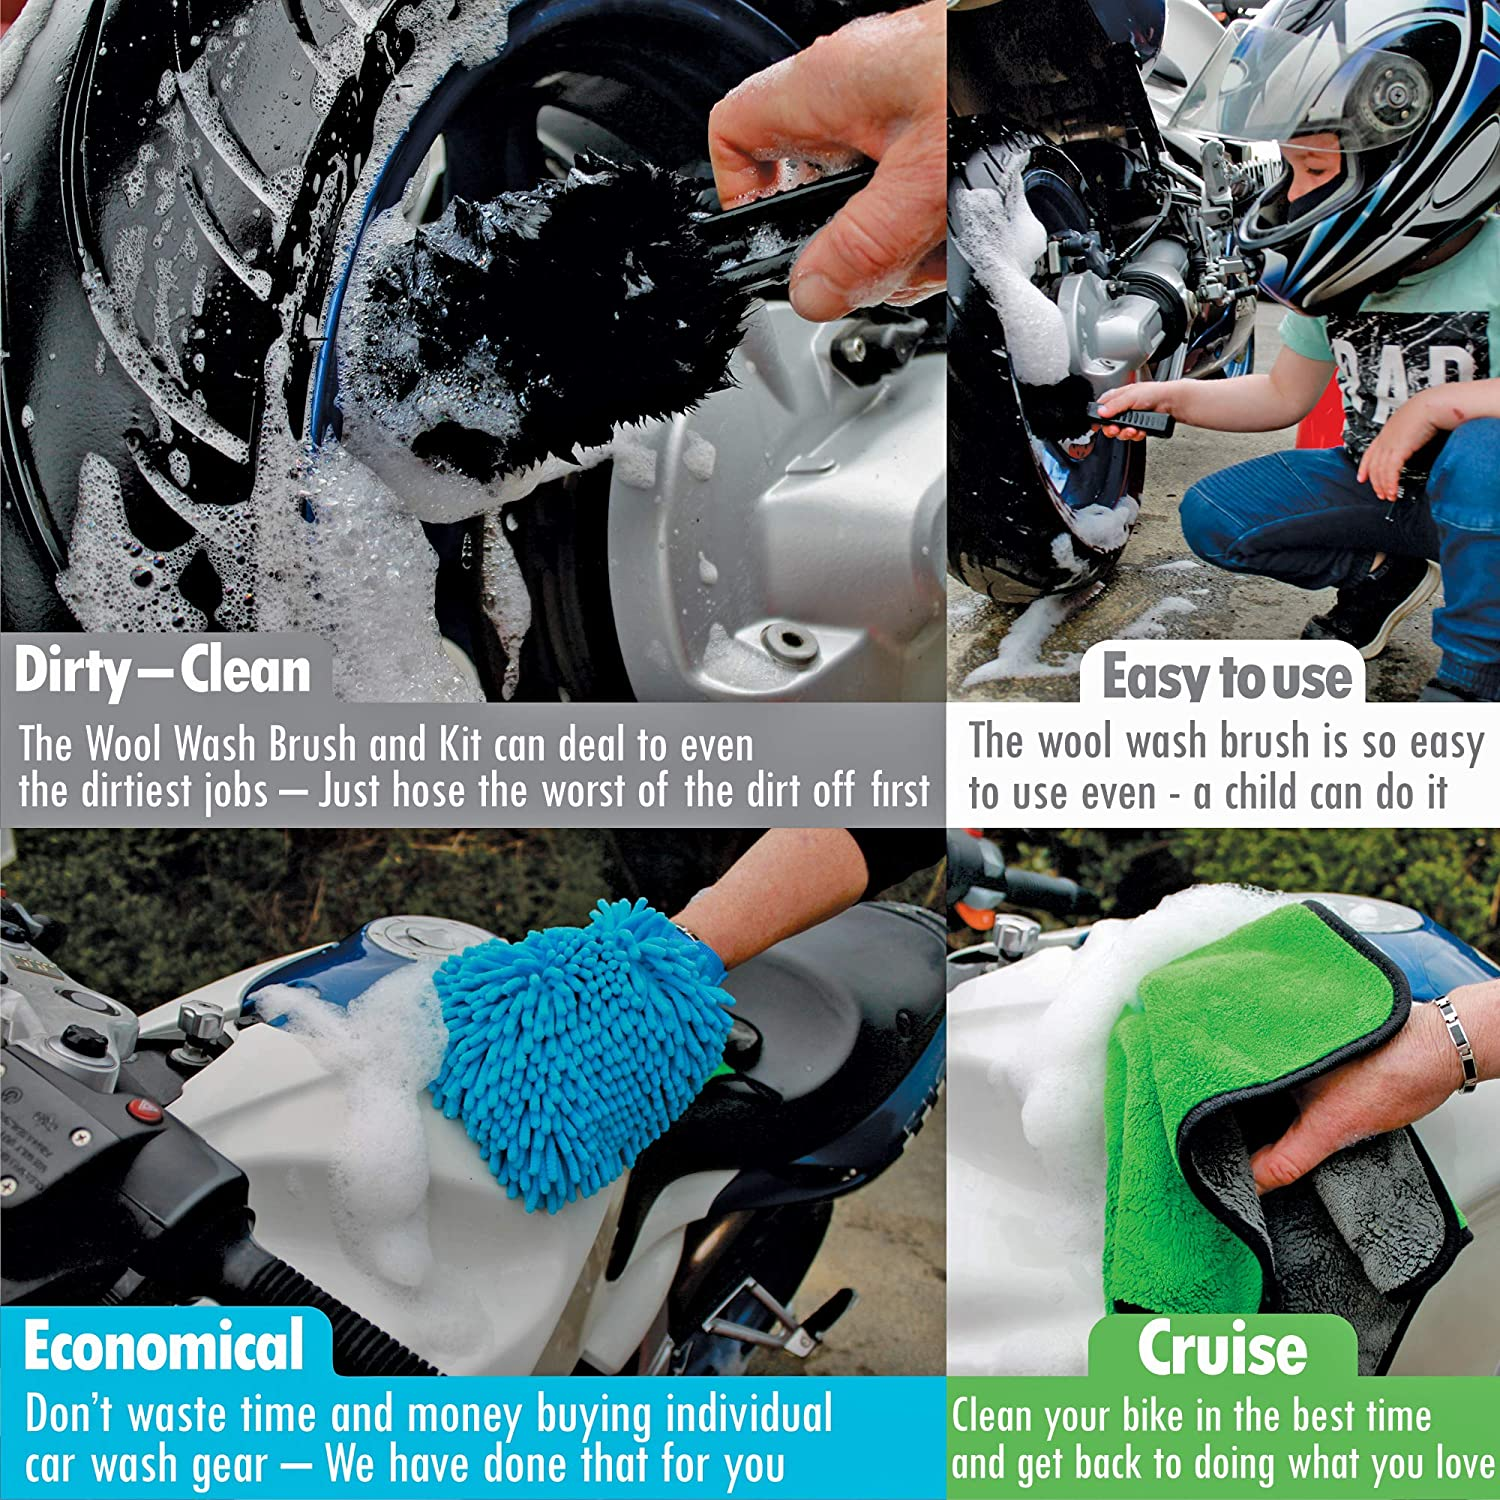 Truck /& Motorcycle Detailing Kit Perfect Car 3 Piece Pack with Wool Wash Brush Onetrackme Motorcycle Detailing Brush Kit Chenille Wash Mitt Microfiber Wash Cloth Boat